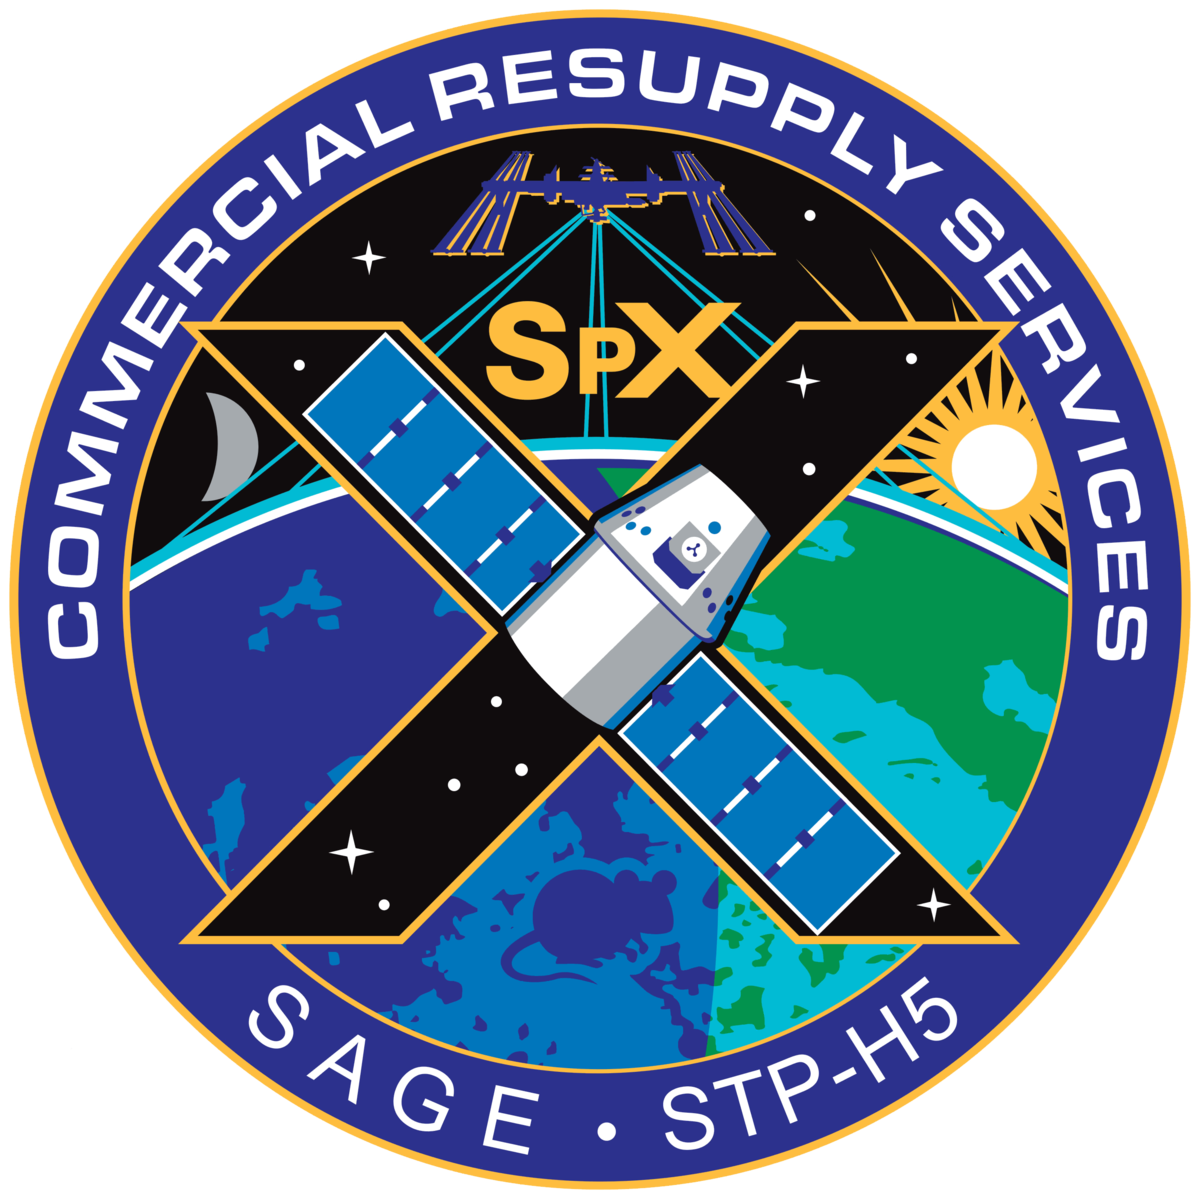 spacex crs 4 logo - photo #2